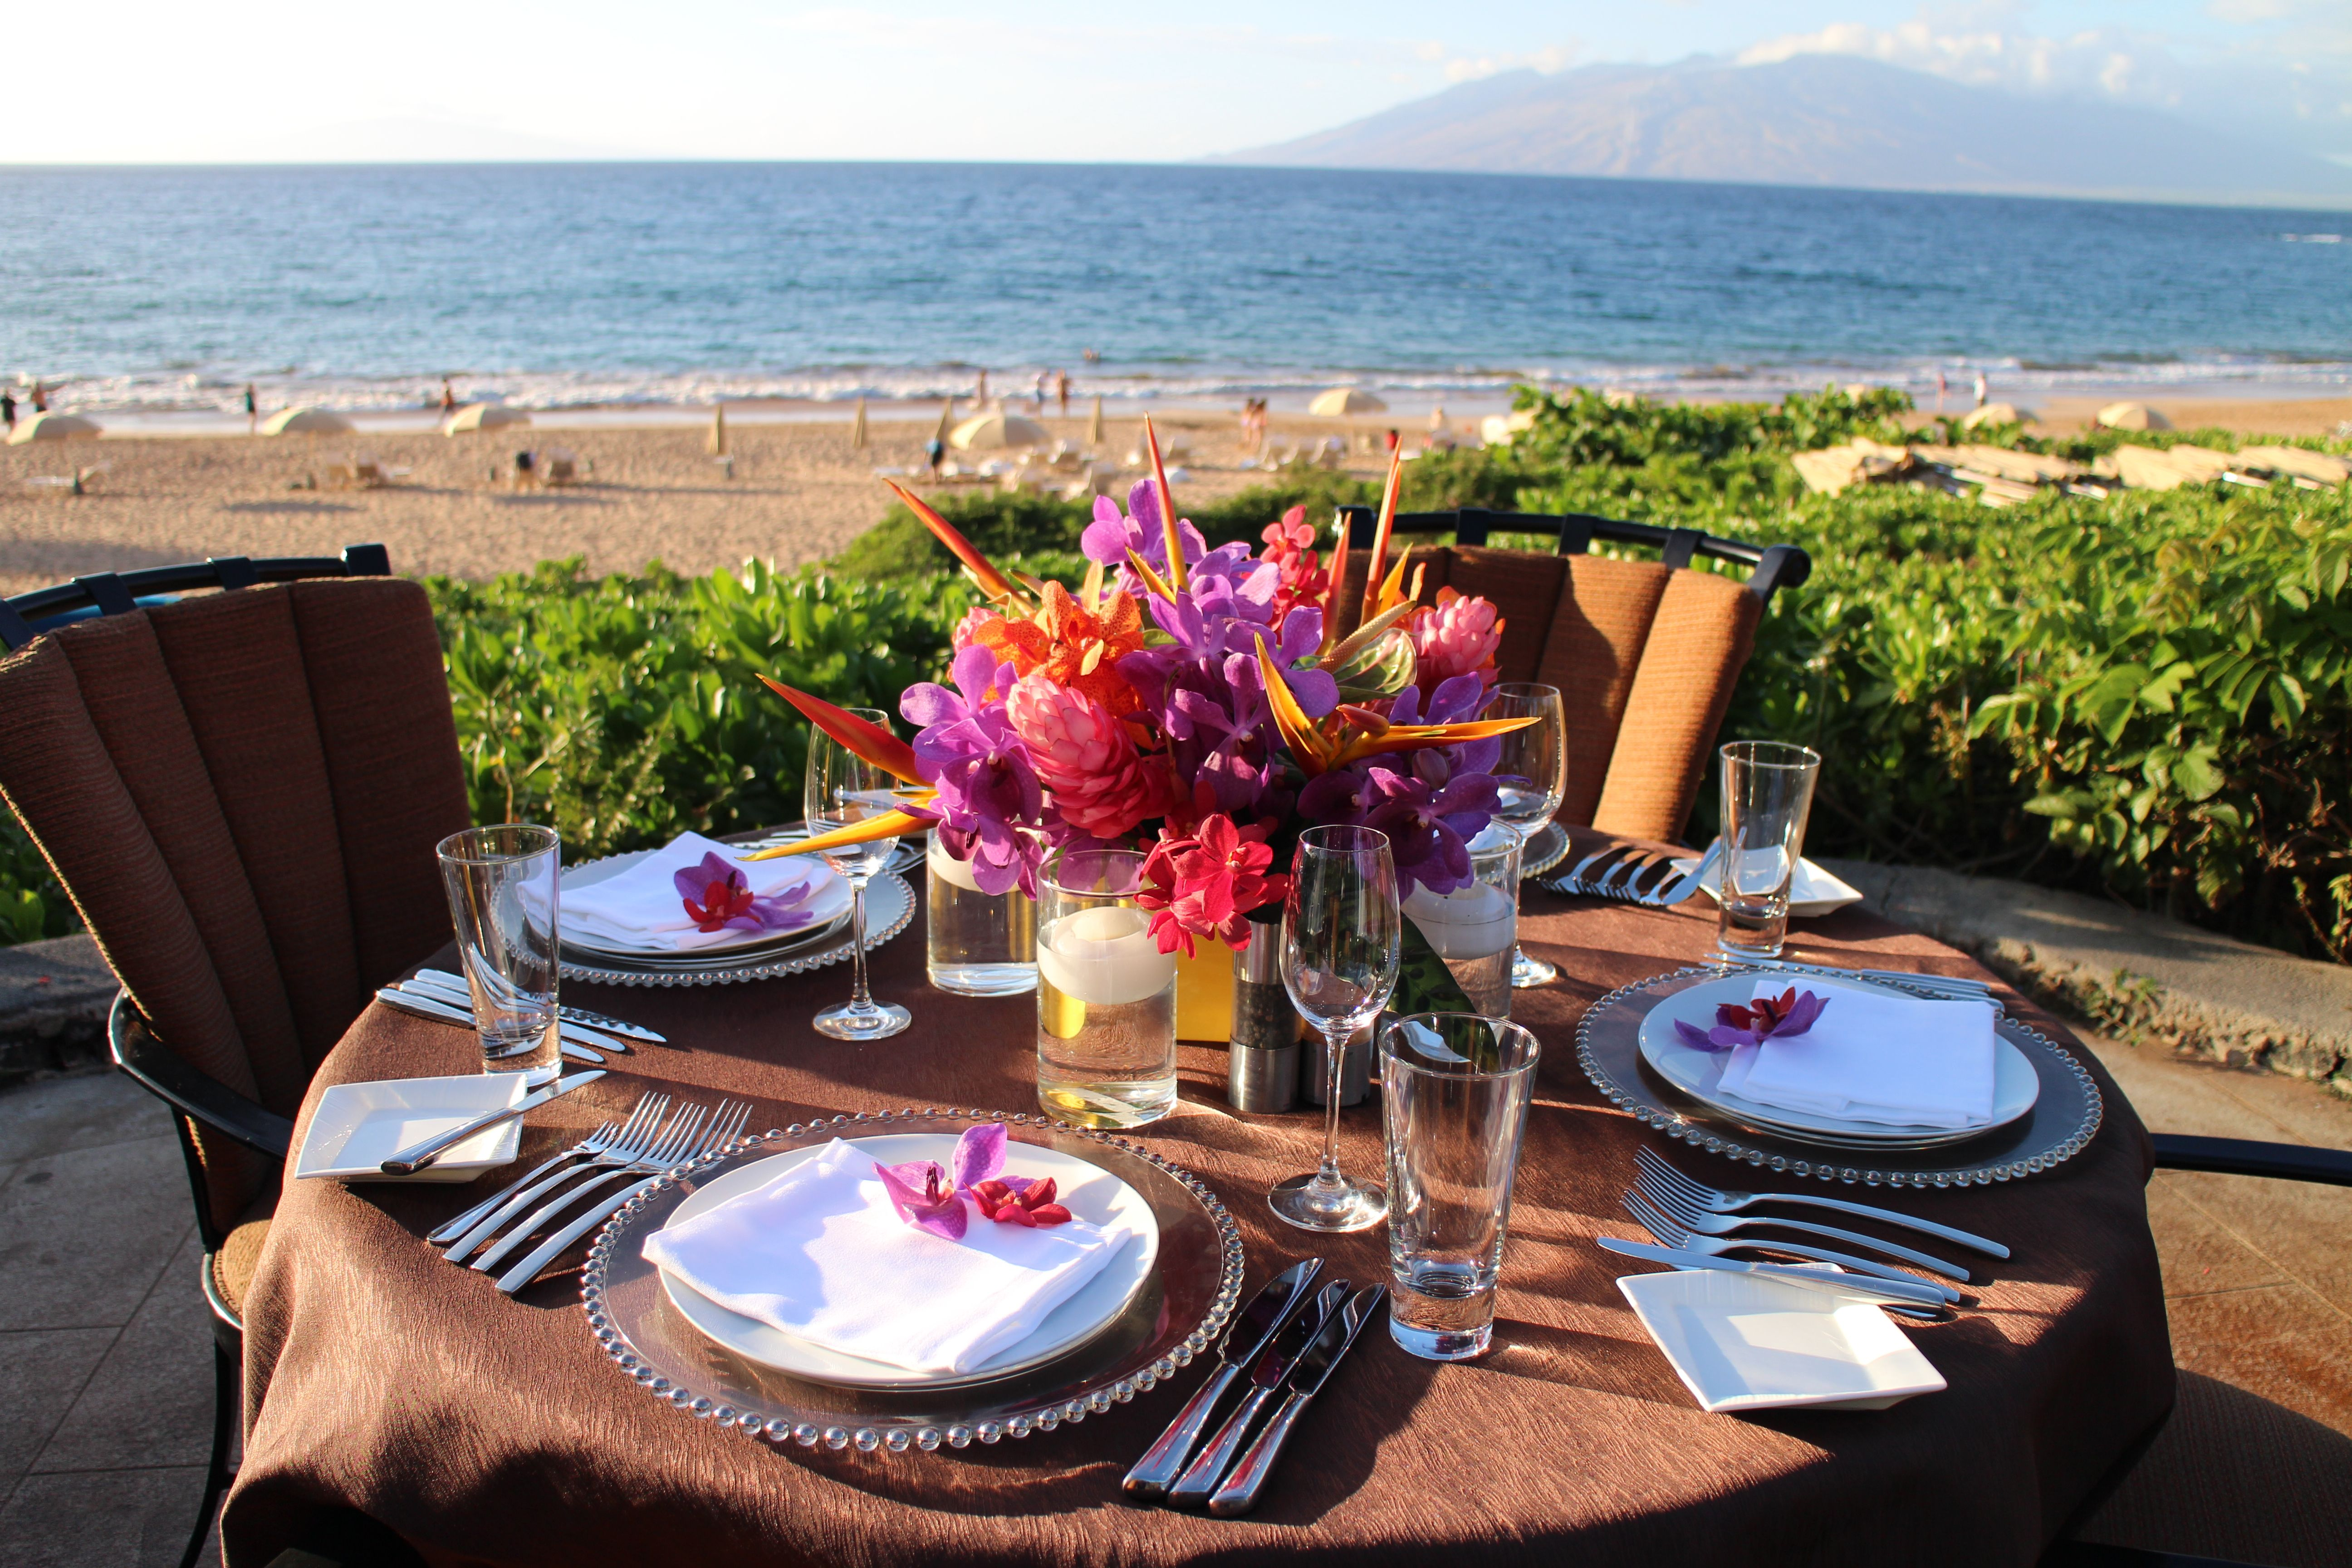 Four Seasons Resort Maui At Wailea Offers Couples And Families The Chance  To Enjoy Private Dining And Ocean Front View With The Ultimate Dinner  Experience.